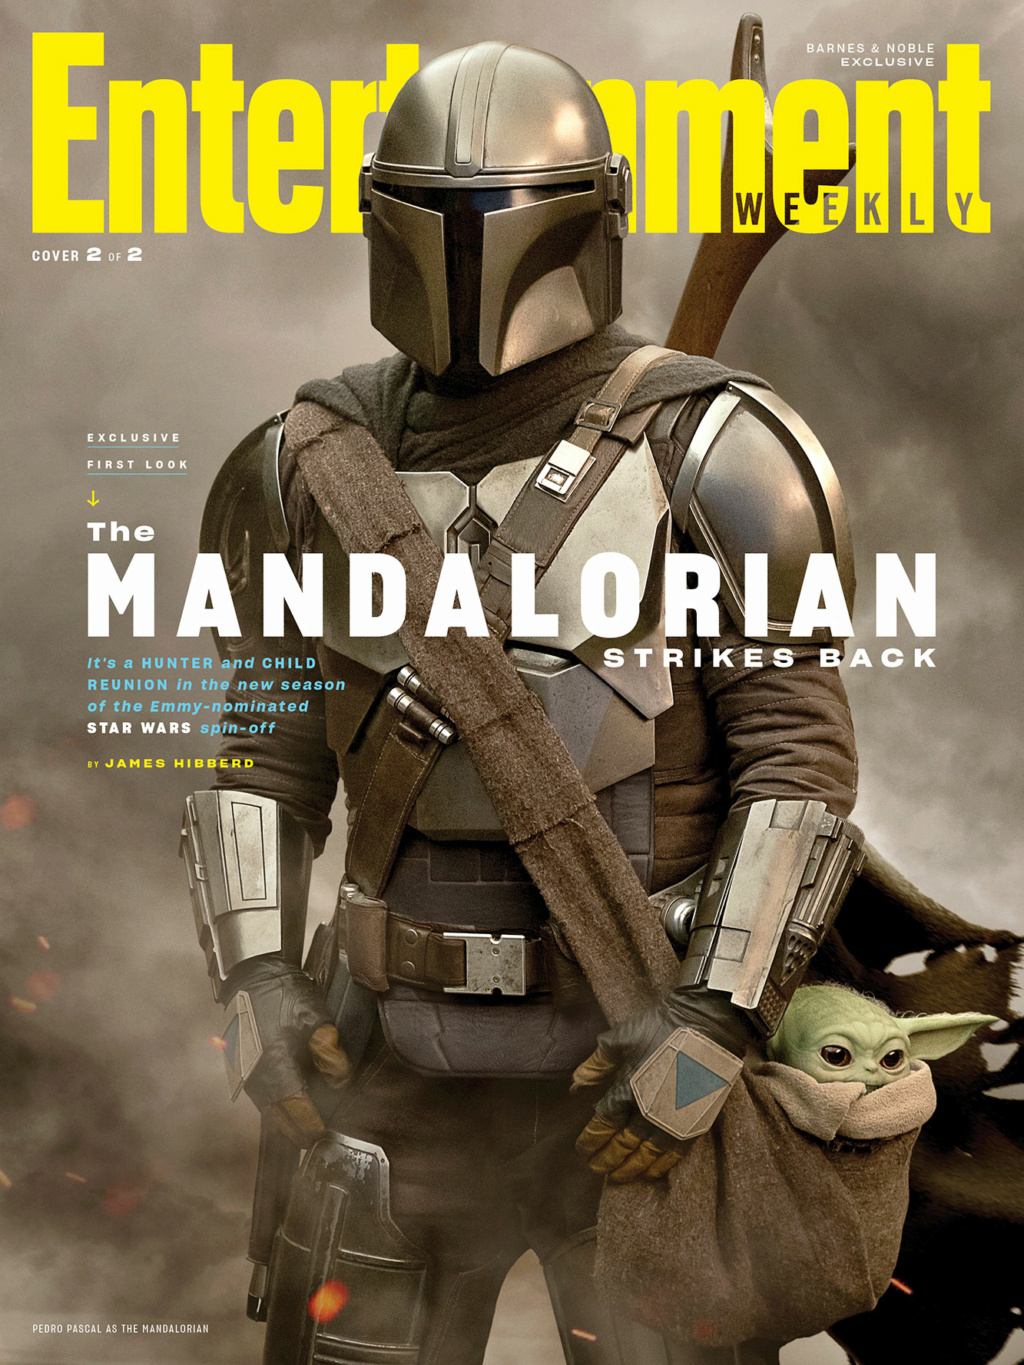 Les NEWS de la saison 2 de Star Wars The Mandalorian  - Page 2 Ew00b10